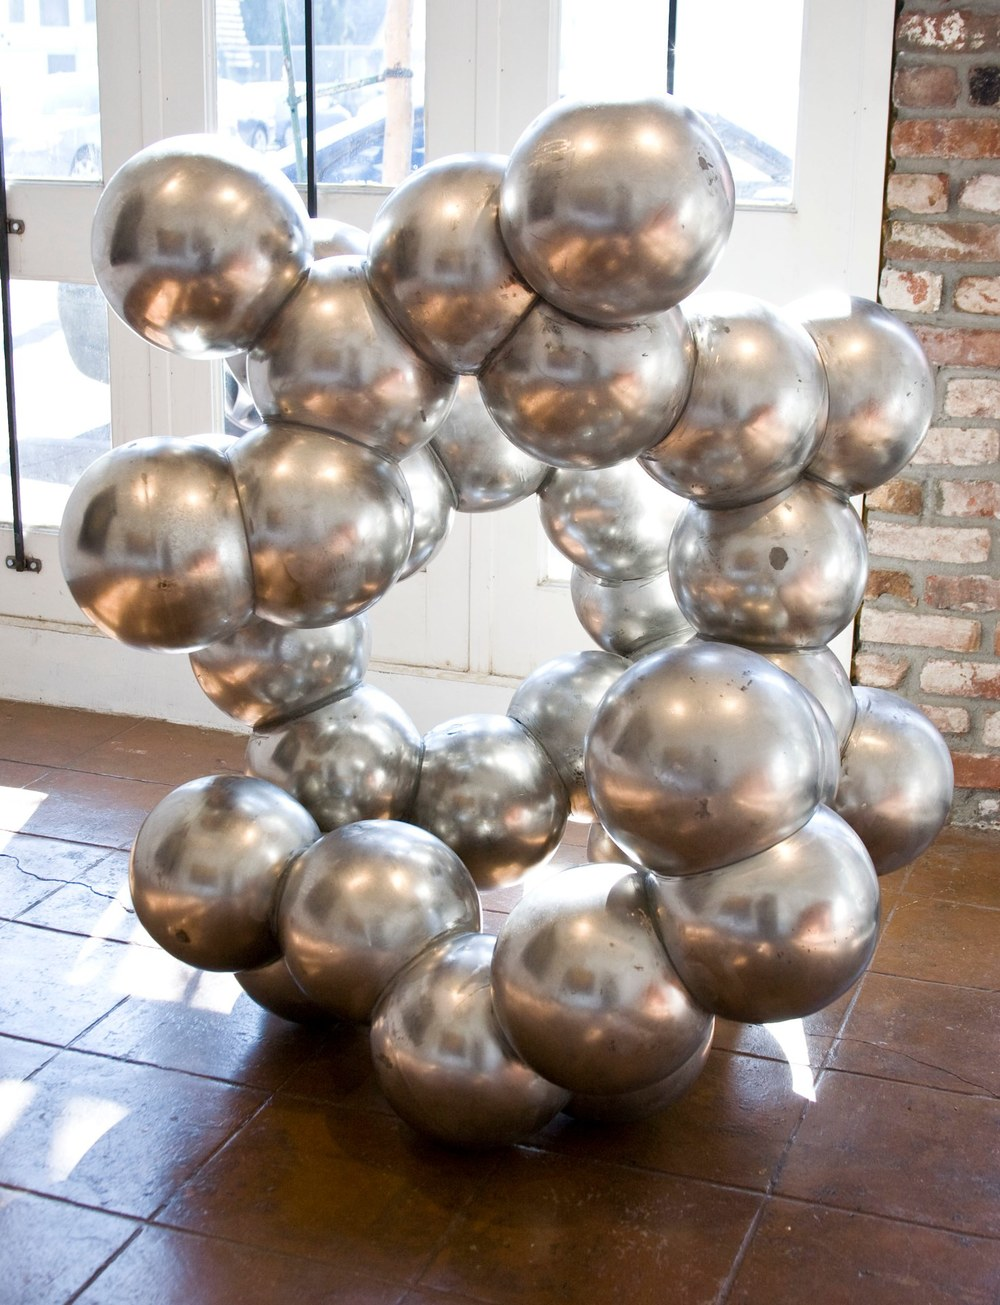 Randy Colosky Another Shape of Things to Come Part 4, 2012 stainless steel 42 x 45 x 48 inches